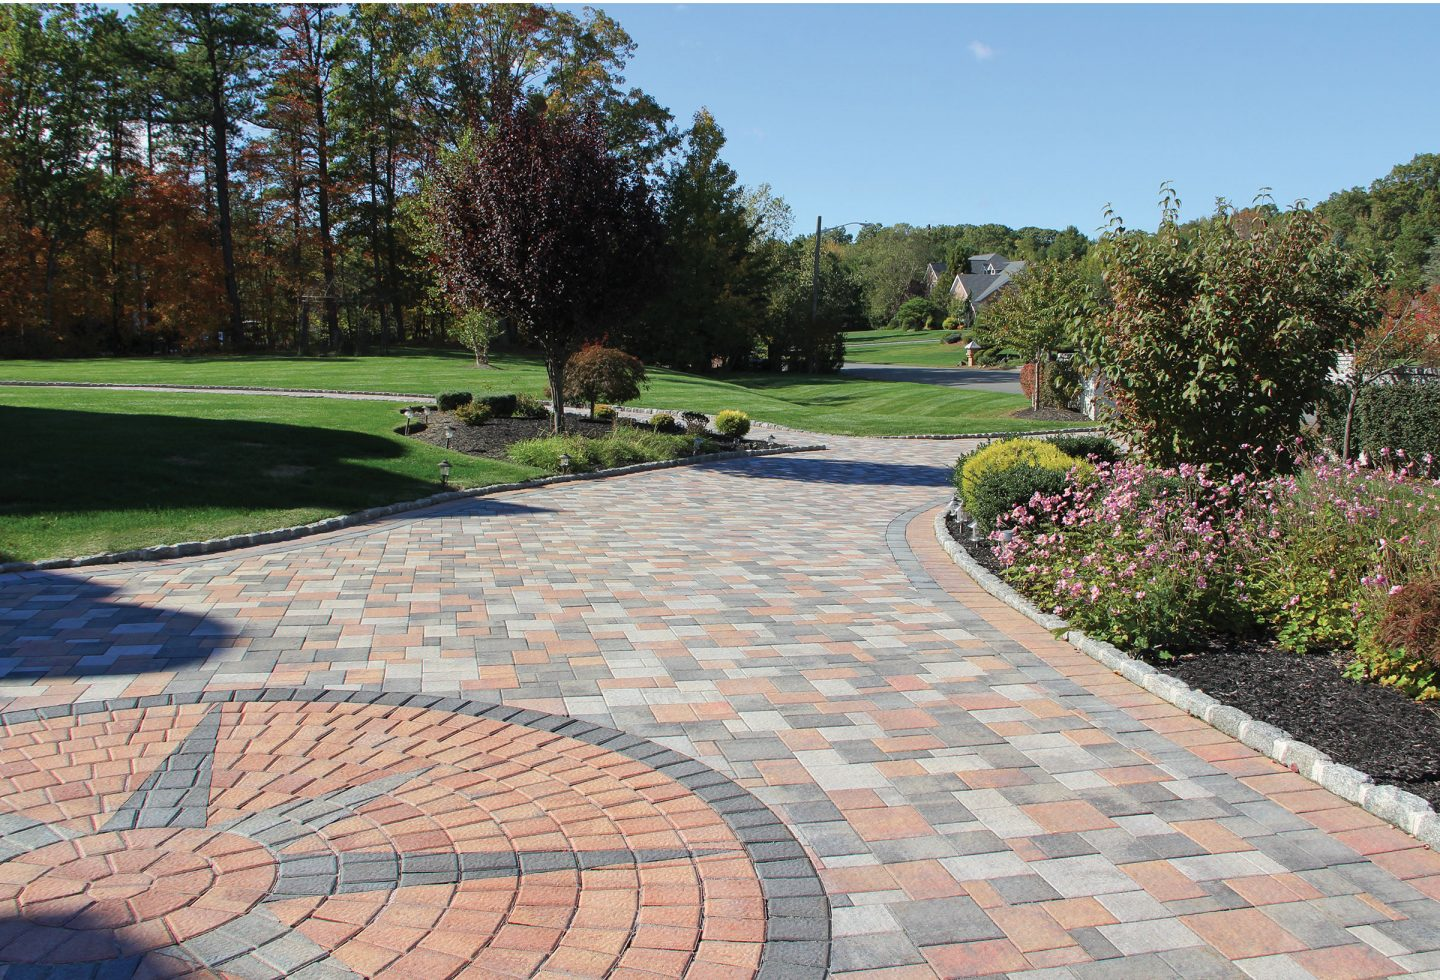 Nicolock-Outdoor-Patio-Pavers-with-Design-on-Driveway